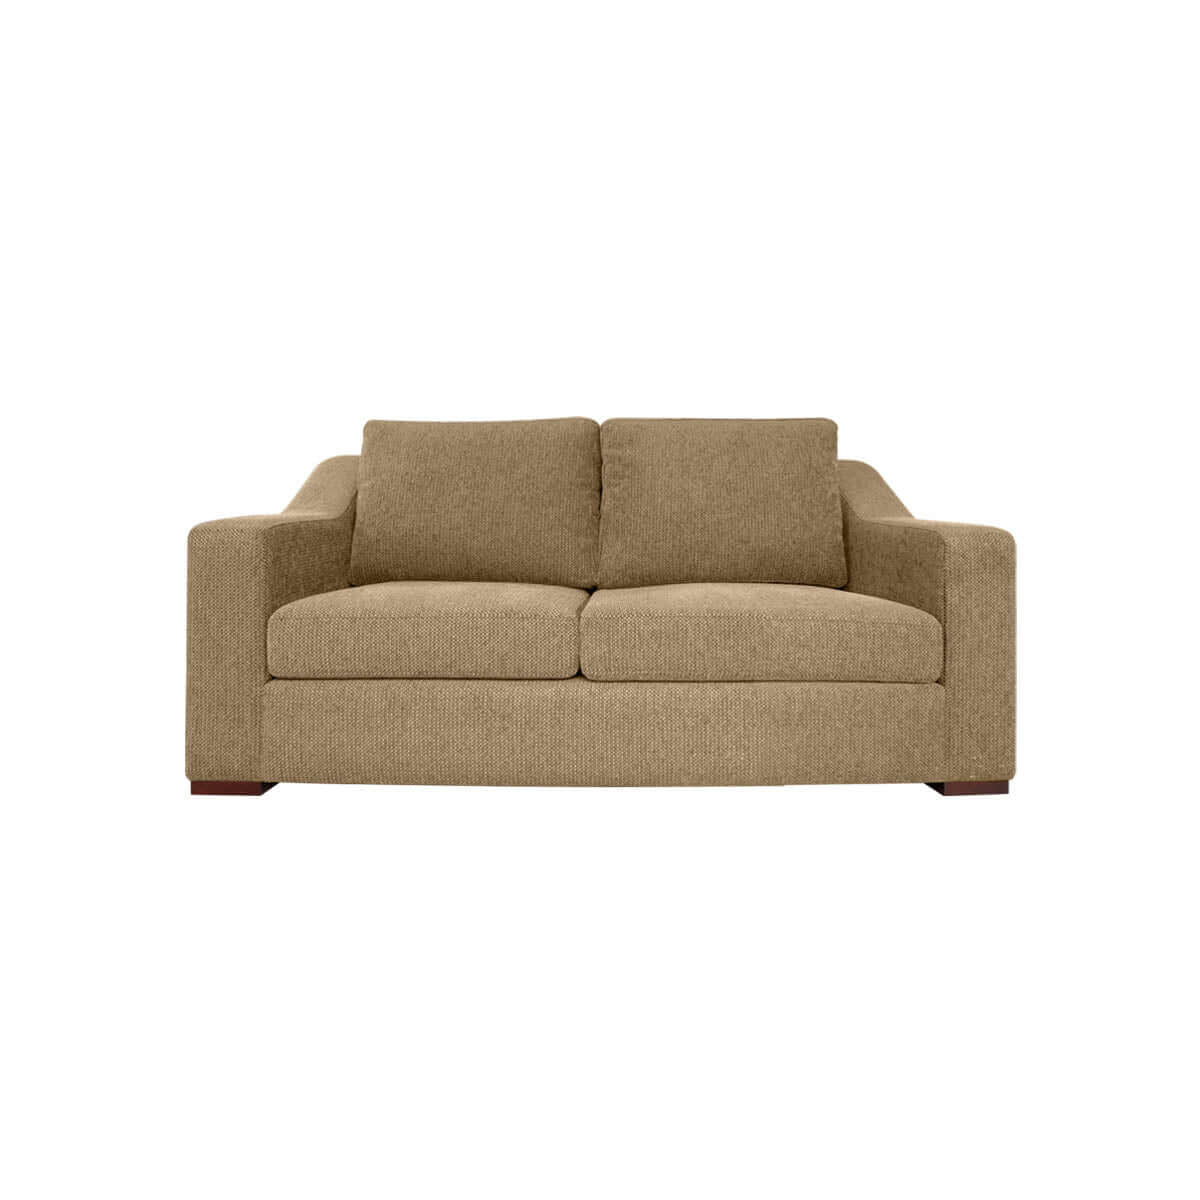 Presidio two seat sofa with prestigious accent arm